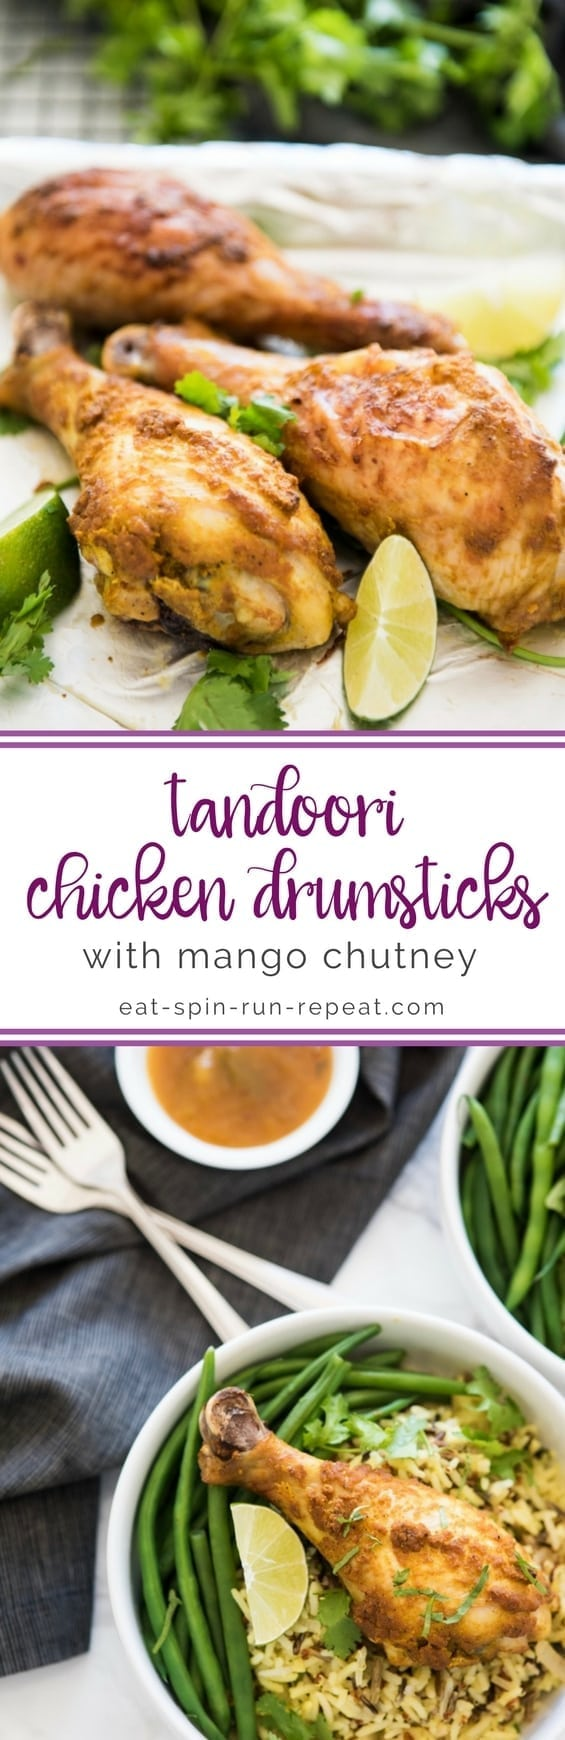 Healthy Tandoori Chicken Drumsticks with Mango Chutney || #glutenfree #paleo || Eat Spin Run Repeat